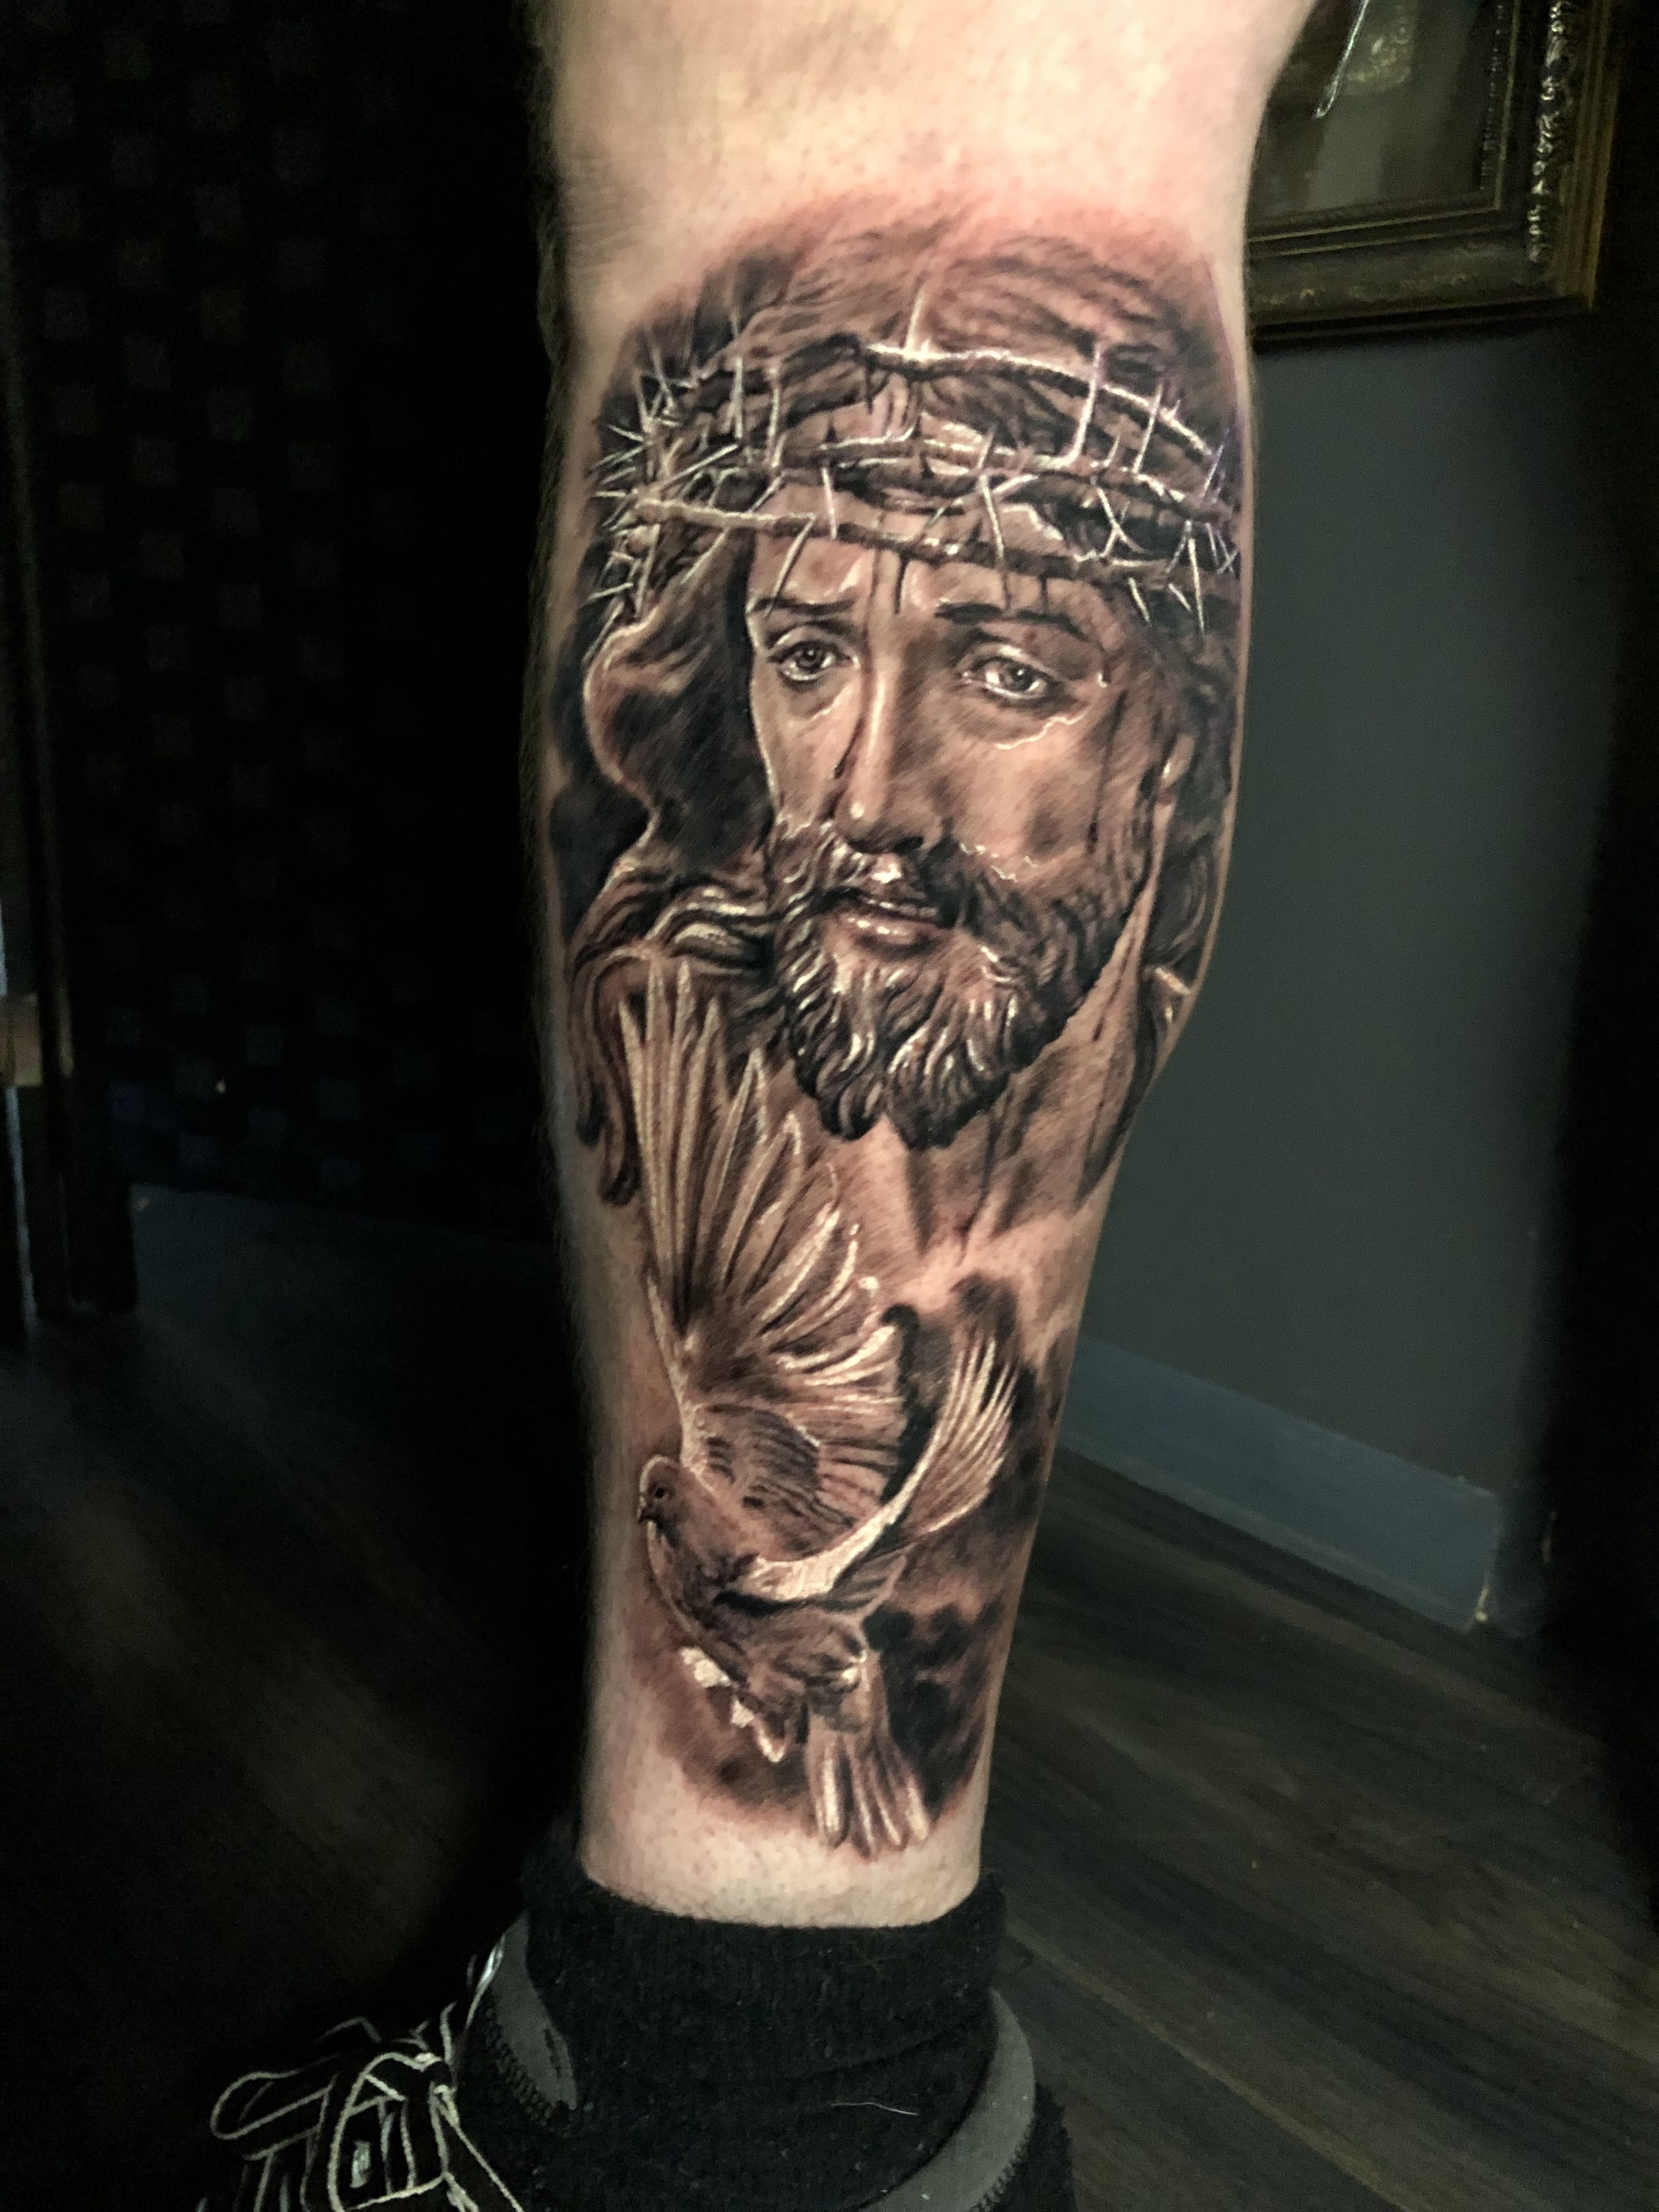 Jesus tattoo by Pali. Limited availability at Redemption